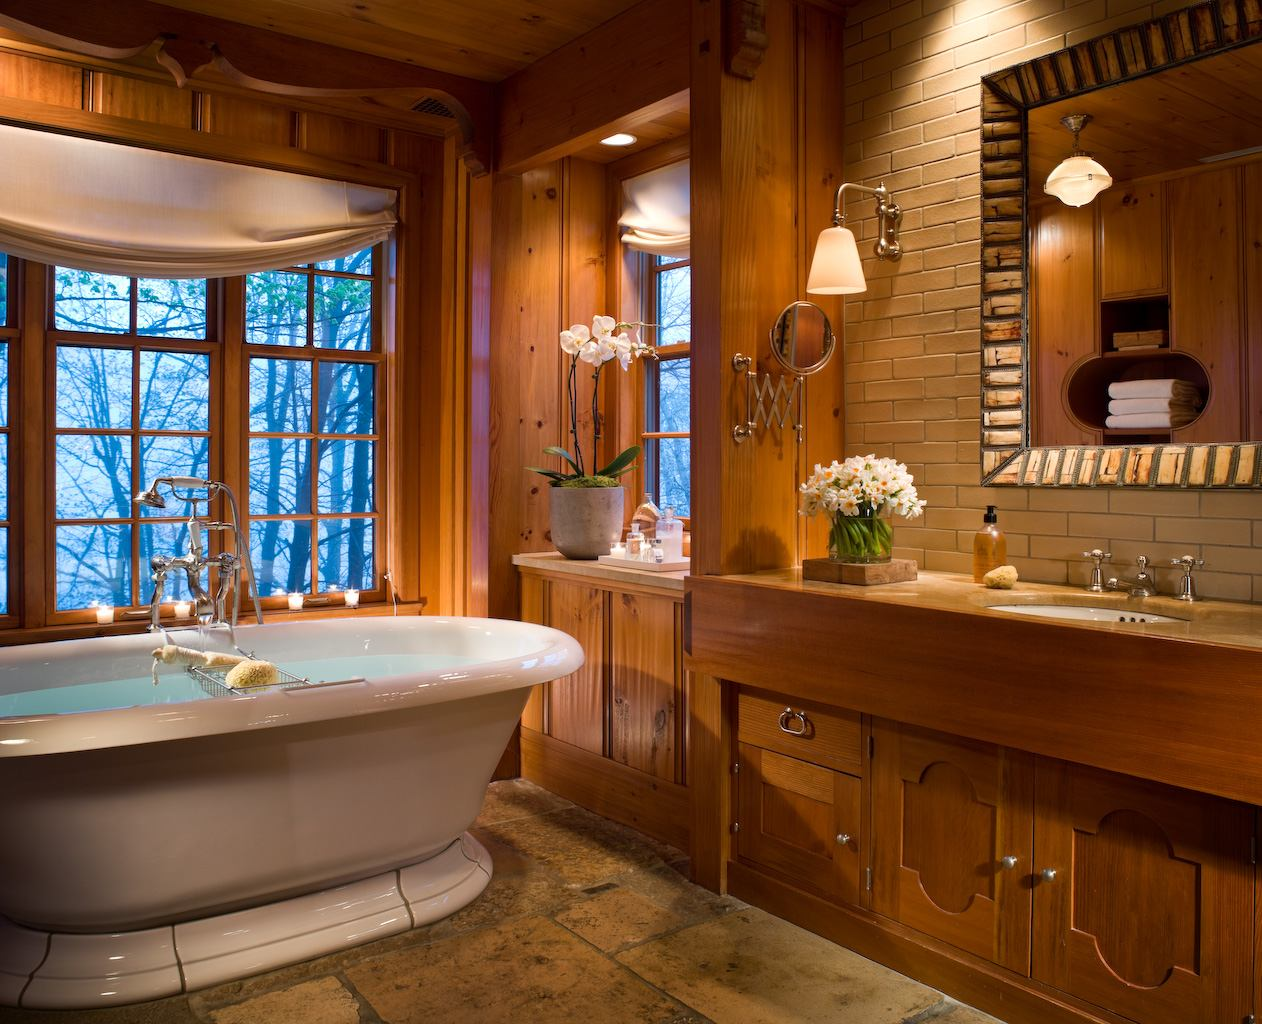 Best Kitchen Gallery: The Best Hotel Bathroom Amenities For Fall In New England of New England Bathrooms Designs  on rachelxblog.com